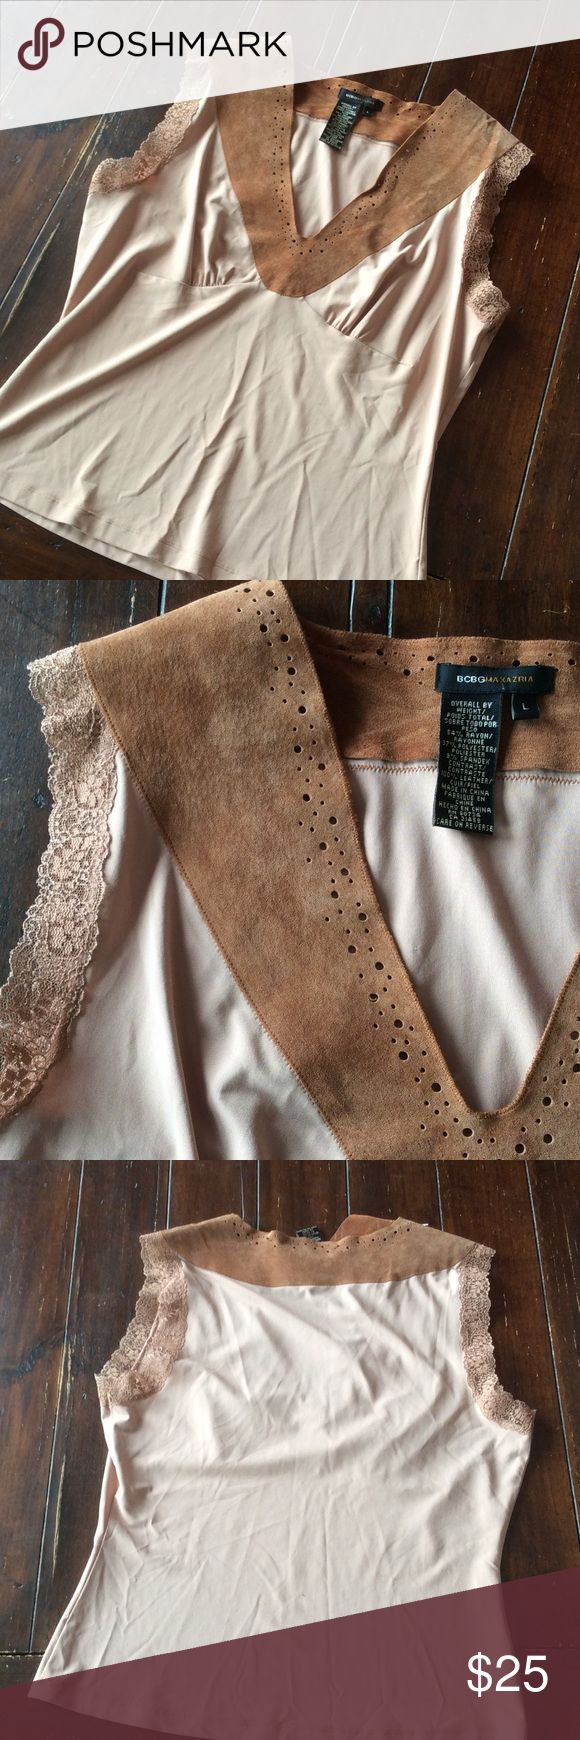 BCBCMaxazaria size L NWOT. Super cute top. 54% rayon, 37% poly, 9% spandex, suede collar. Color is tan/nude/ flesh BCBGMaxAzria Tops Tank Tops